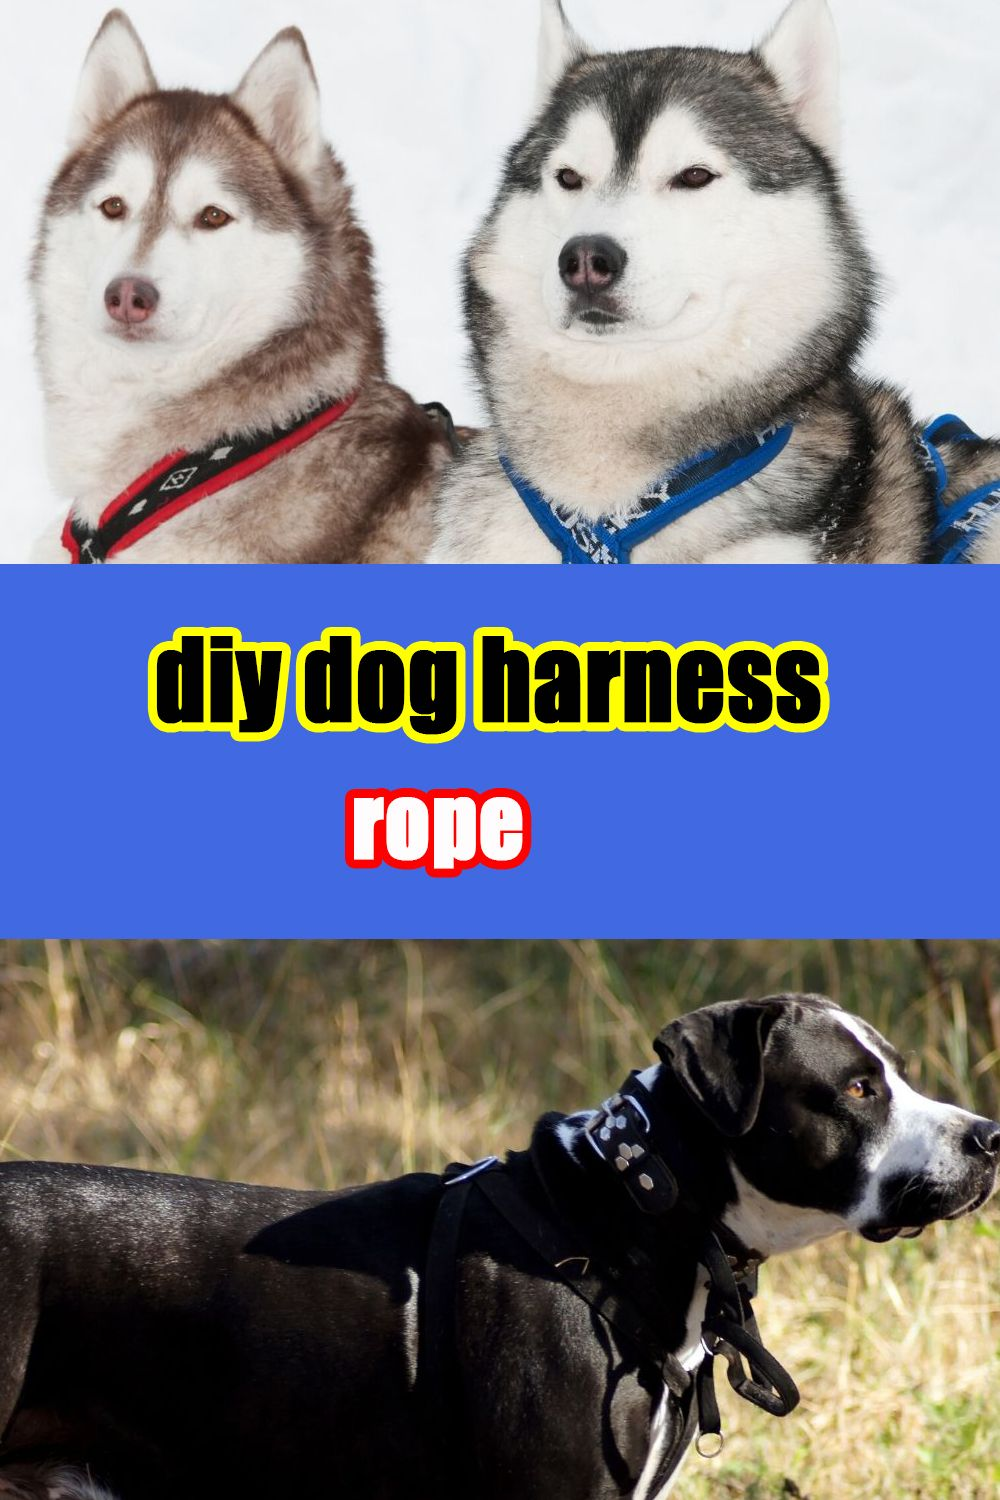 Diy Dog Harness Rope In 2020 Small Dog Harness Cute Dog Harness Dog Harness